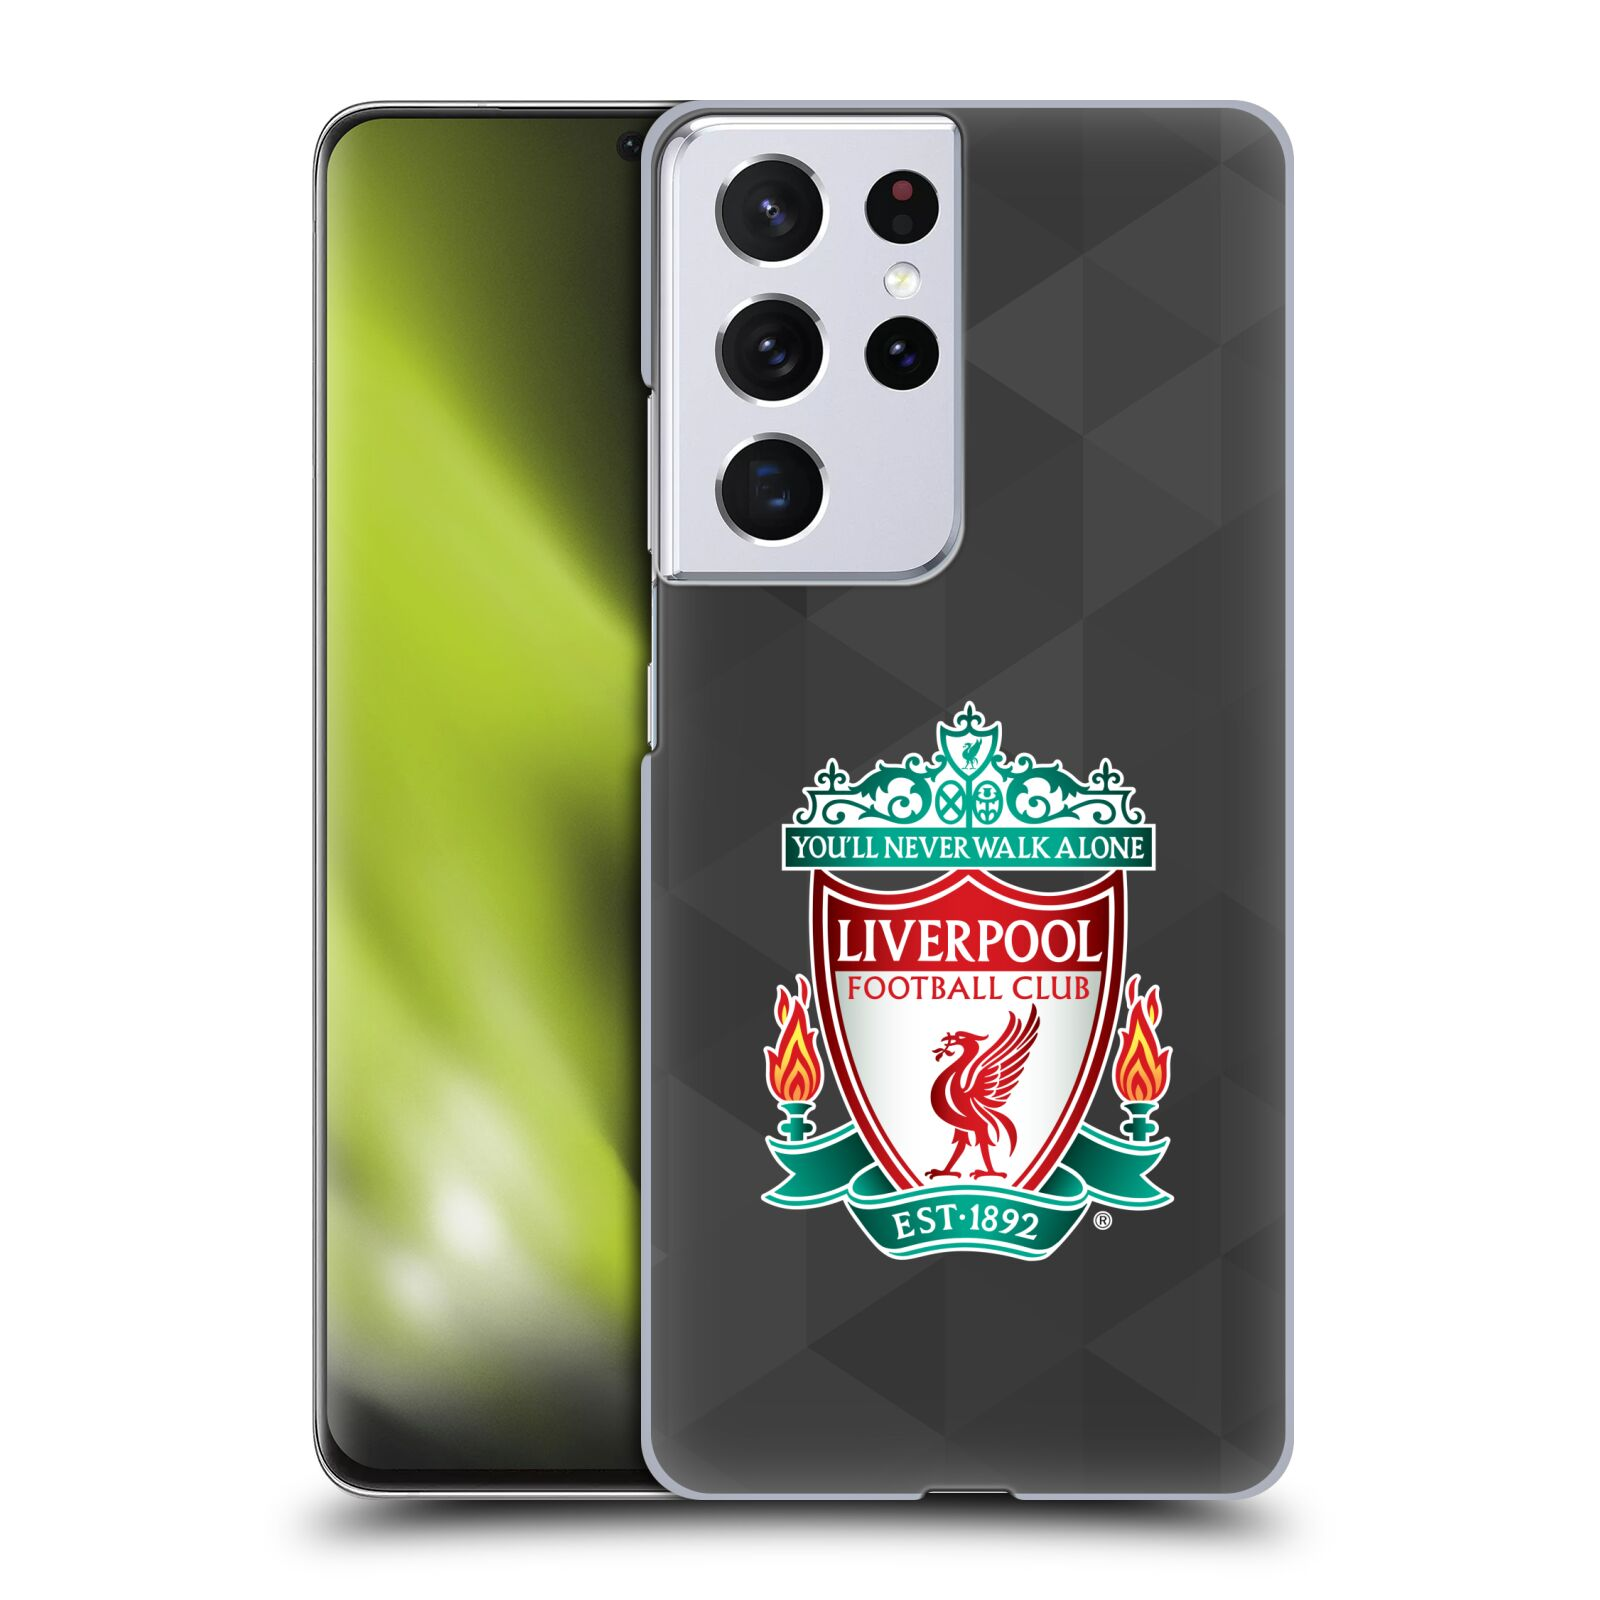 Plastové pouzdro na mobil Samsung Galaxy S21 Ultra 5G - Head Case - ZNAK LIVERPOOL FC OFFICIAL GEOMETRIC BLACK